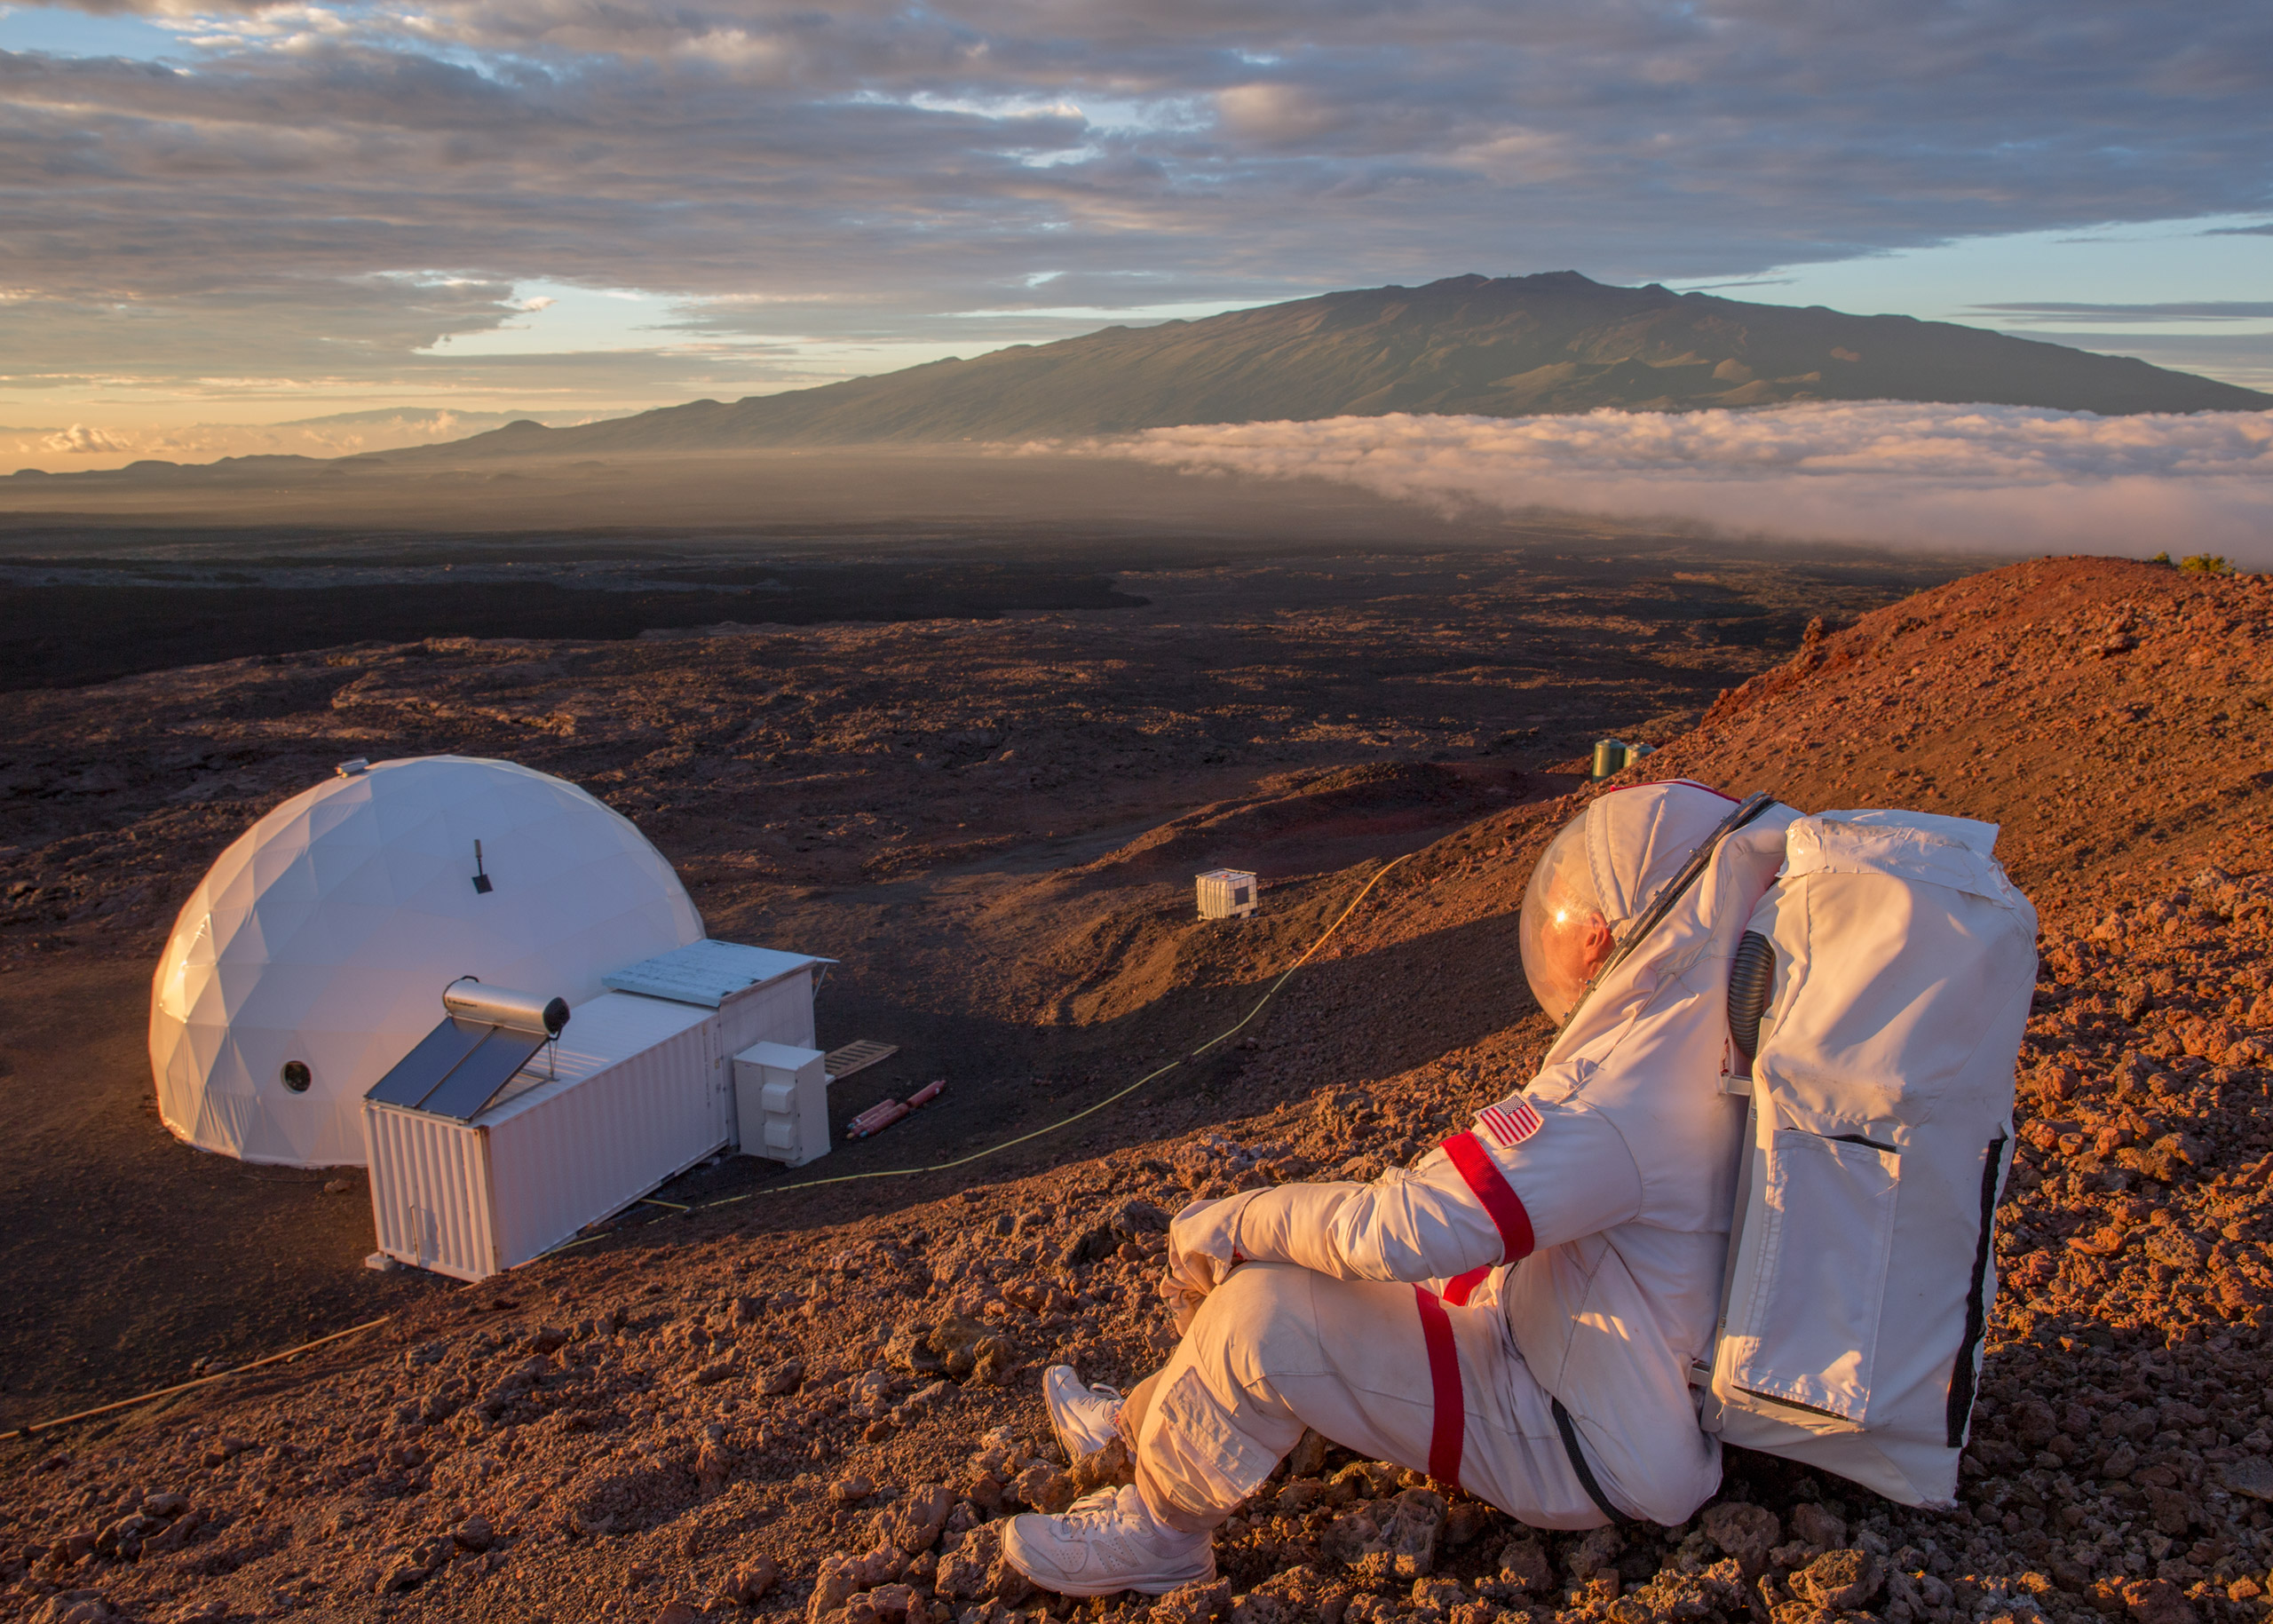 Jeffrey Kluger, TIME'S space writer, suited up as an astronaut would be, looks down at the HI-SEAS facility on Hawaii's Mauna Loa, Sept. 1, 2016. Kluger spent 24 hours inside NASA's Simulated Mars Base in Hawaii.From  My Day on Mars.  Sept. 26, 2016 issue.